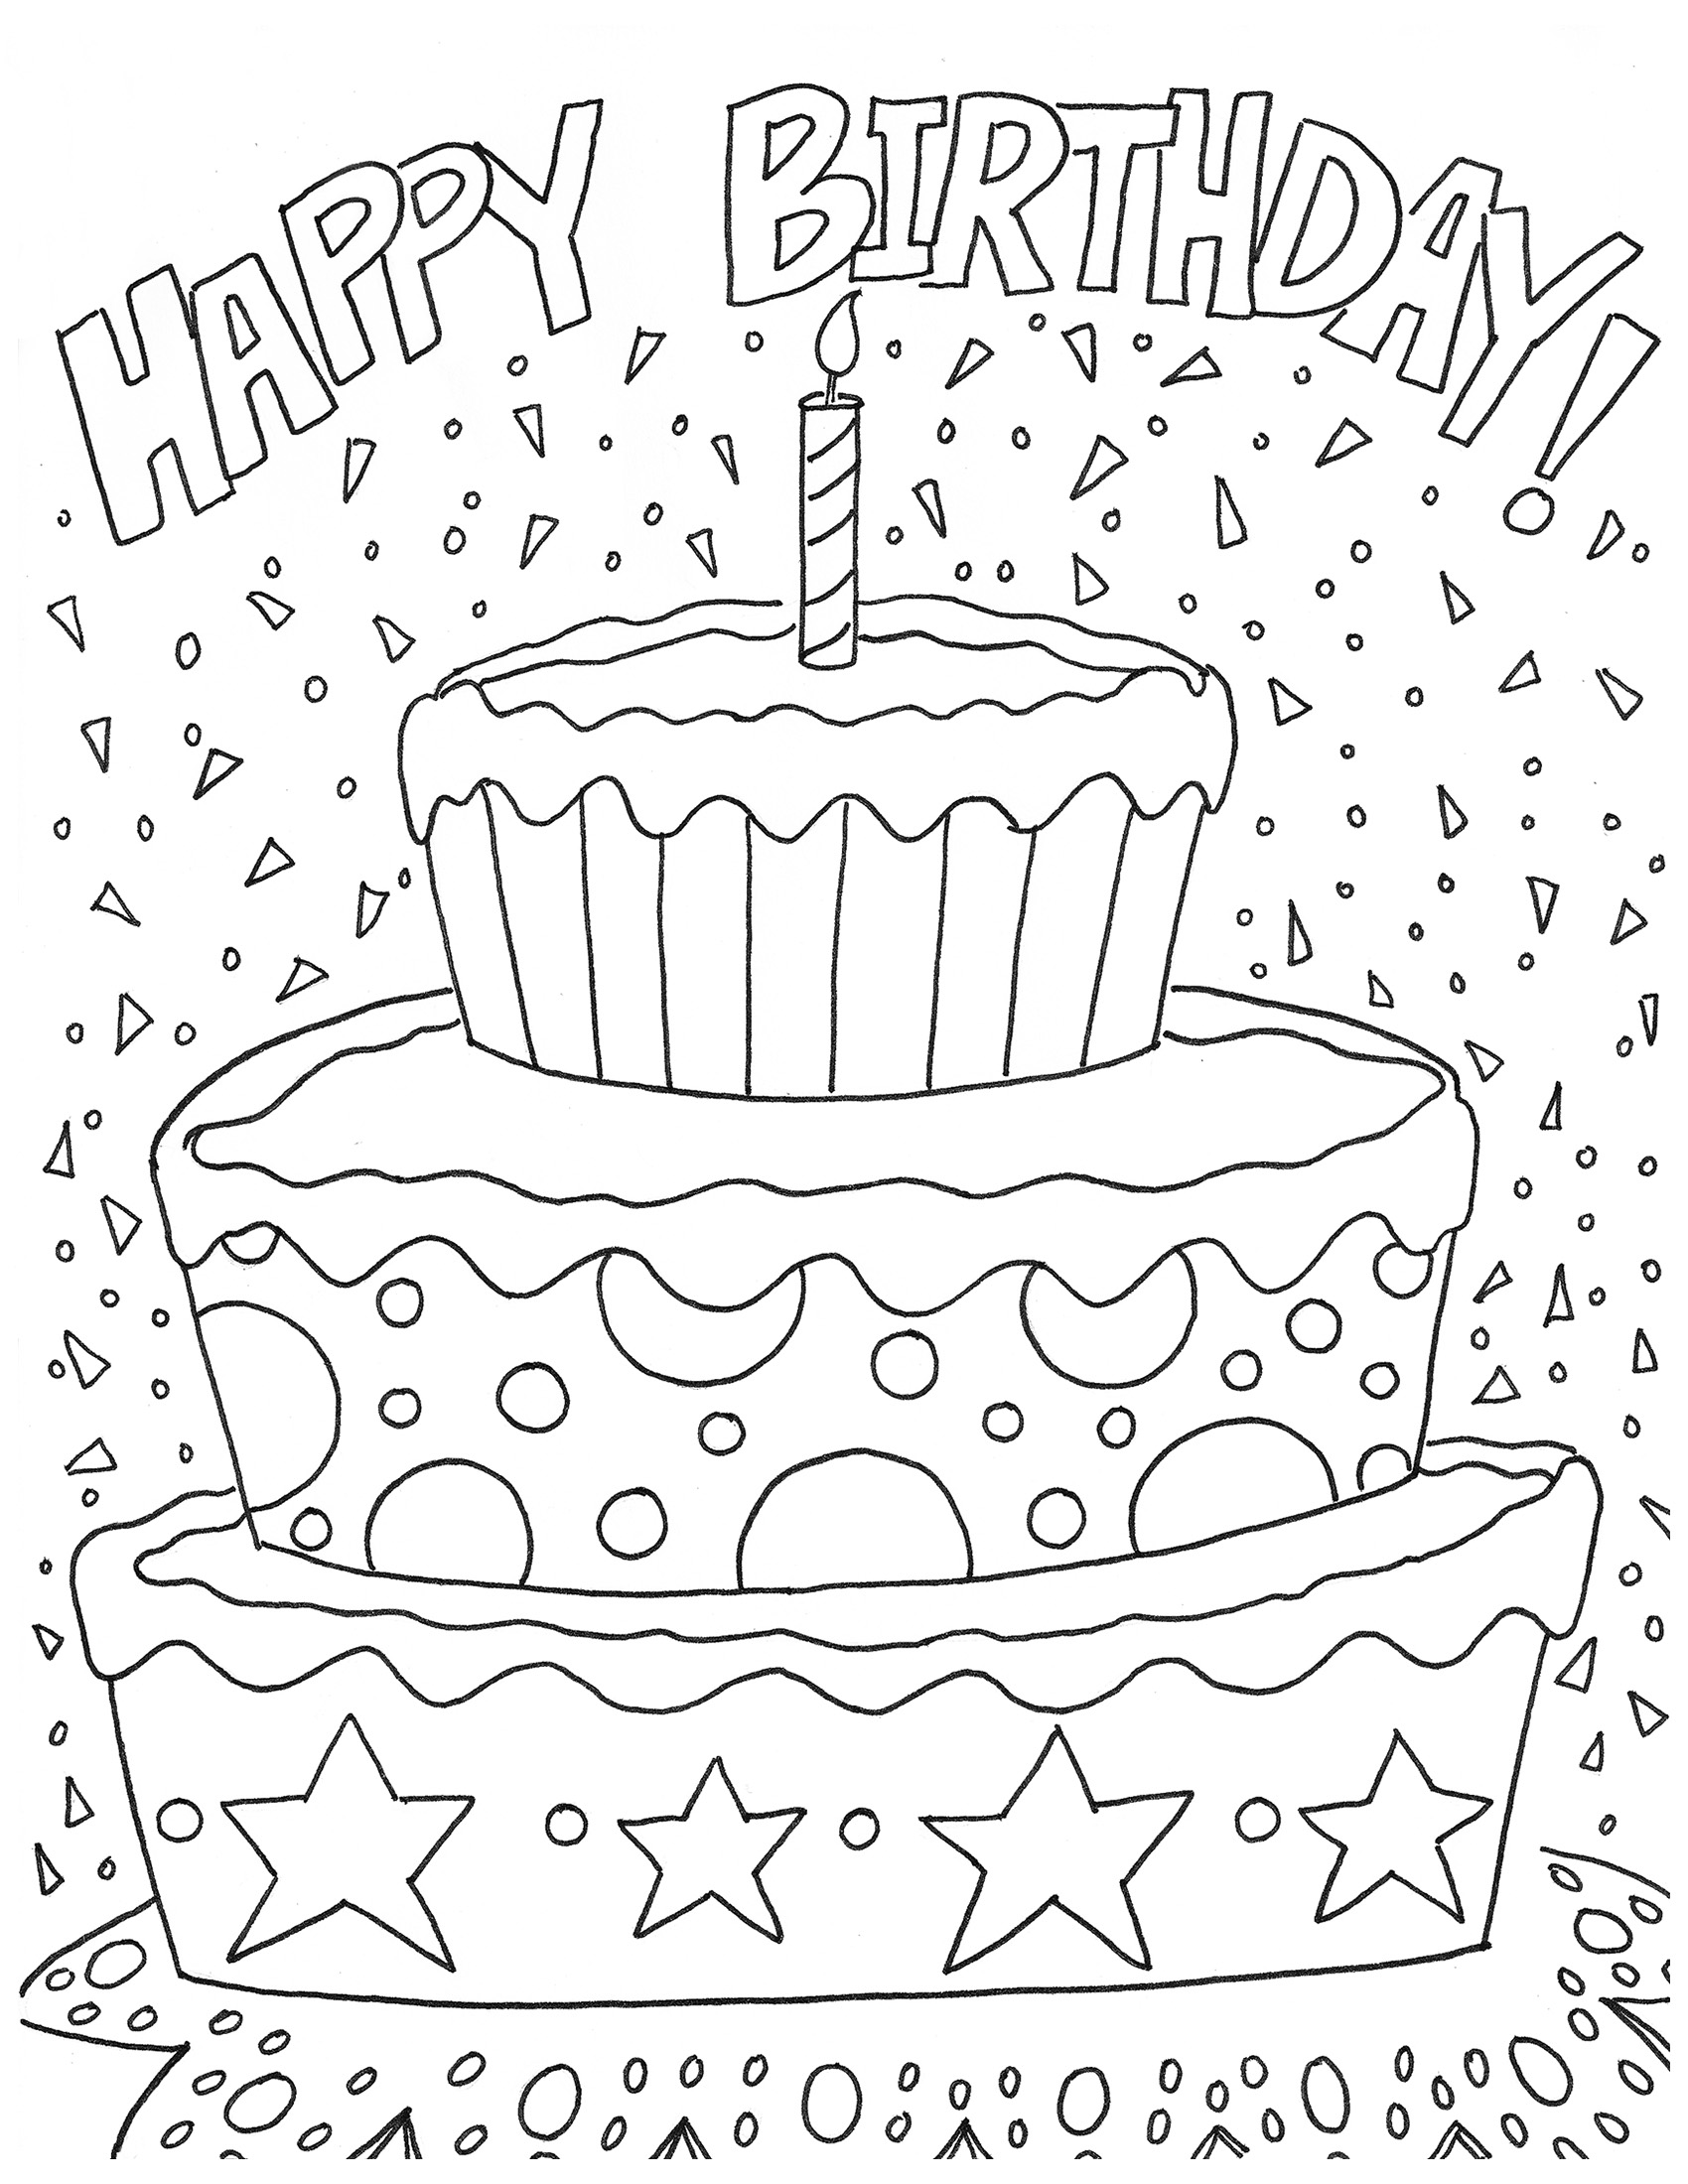 Free Happy Birthday Coloring Page and Hershey - artzycreations.com